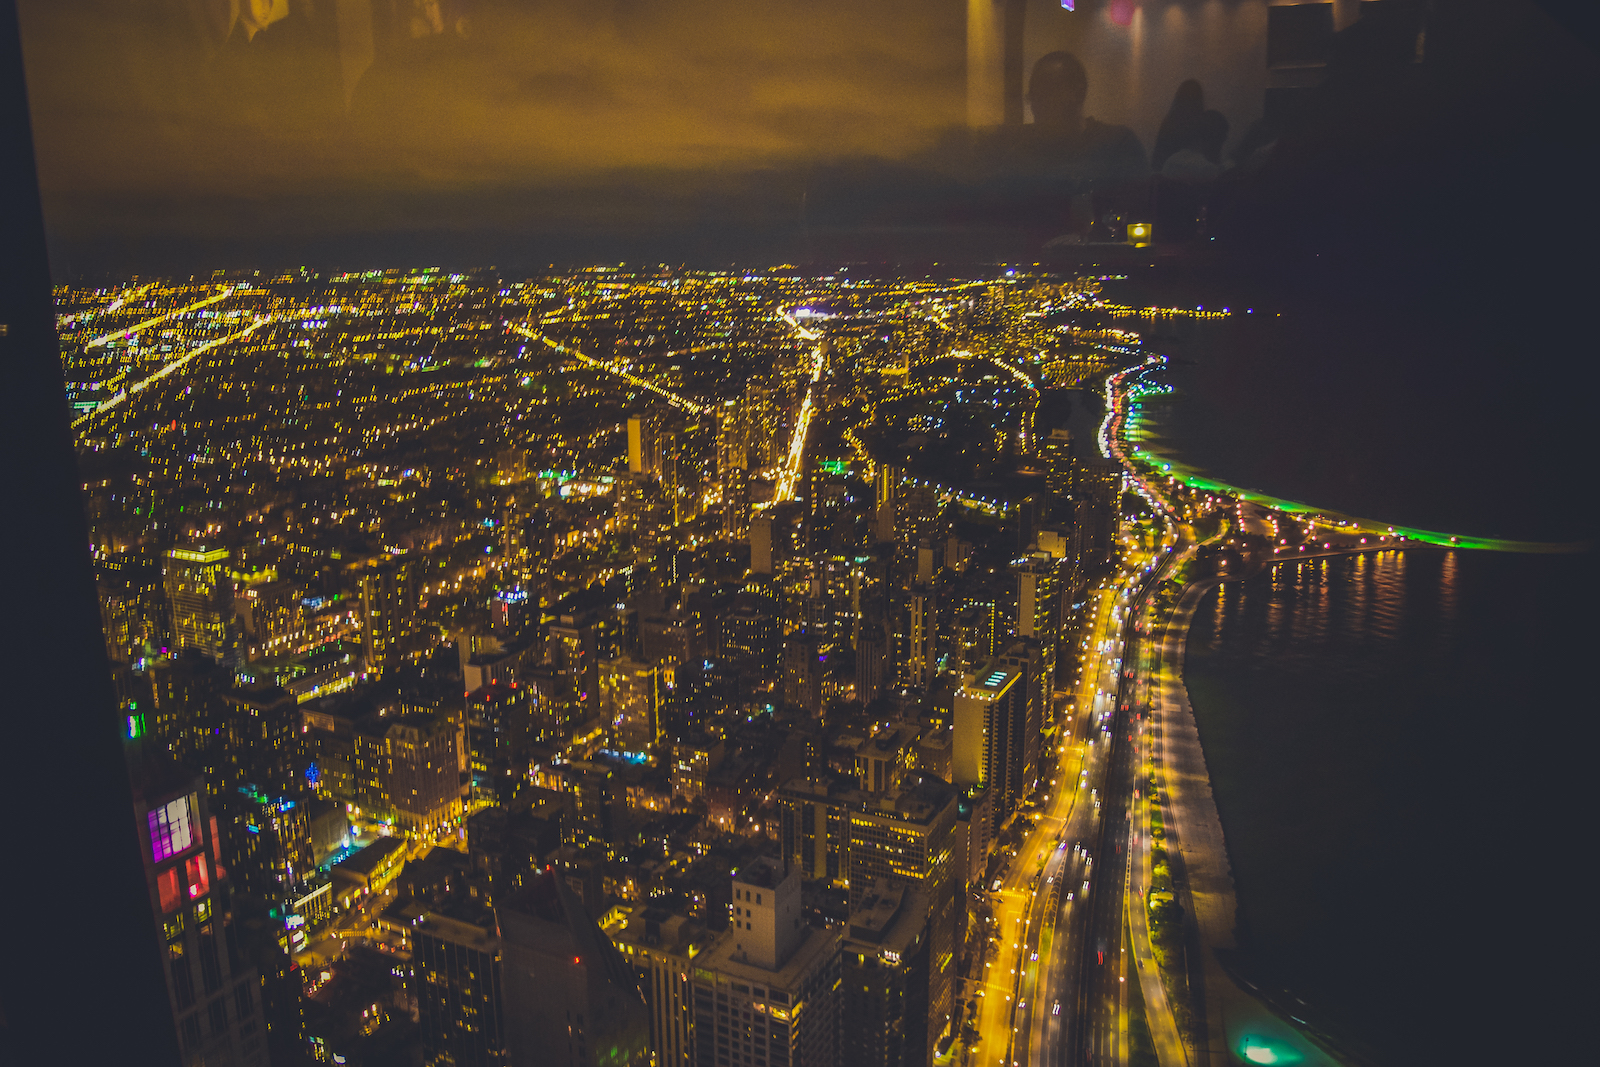 Top 8 Places To Explore In Chicago At Night John Hancock Center Signature Lounge at 96th Travel guide to chicago illinois blog what to do what to see where to go 3 days-100